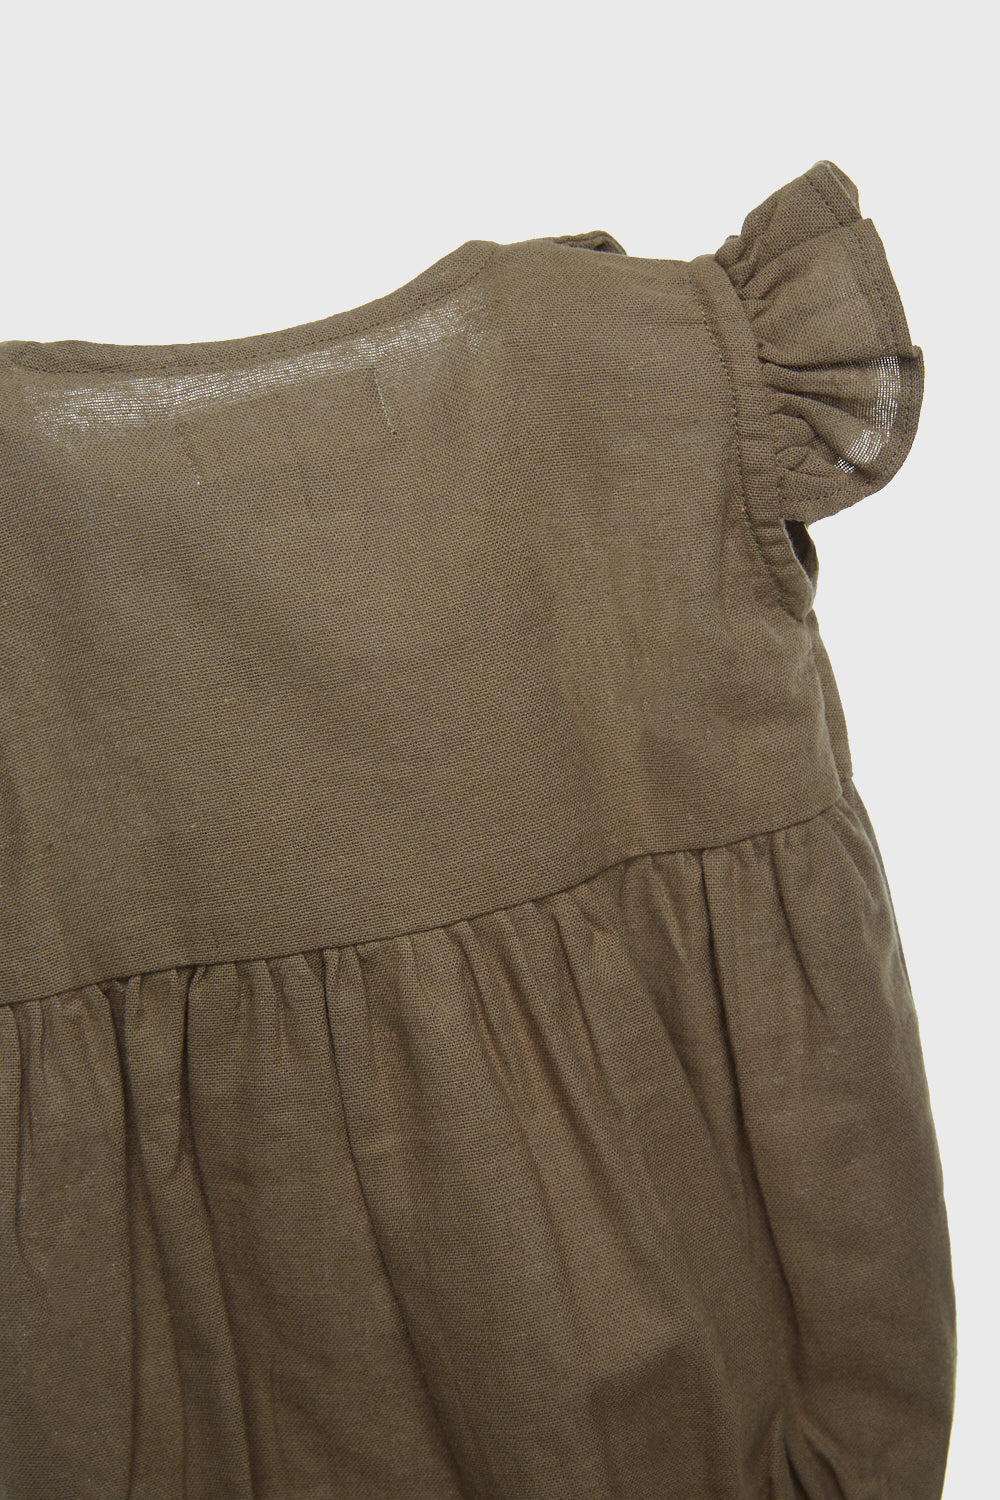 Jolly Romper in Olive